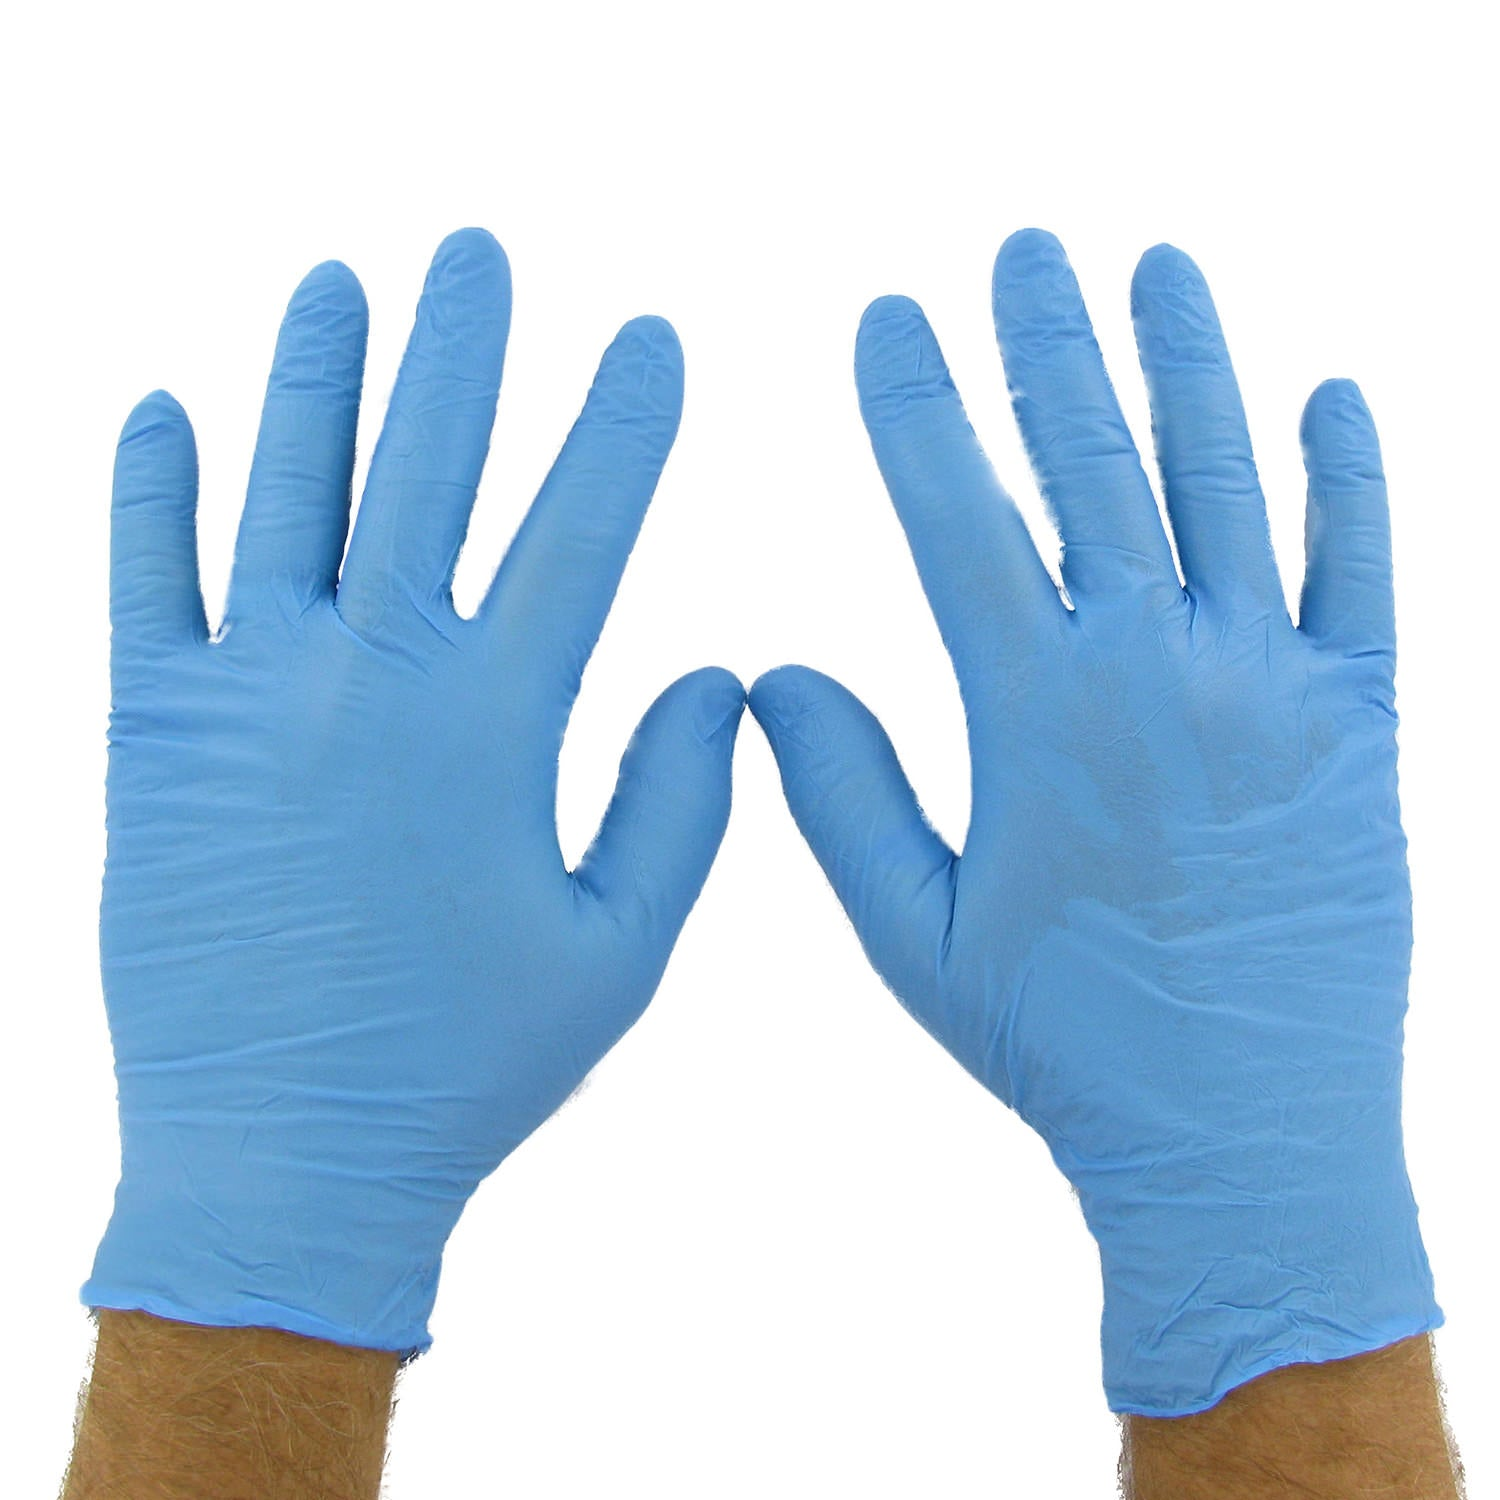 Nitrile Powder-Free Exam Gloves